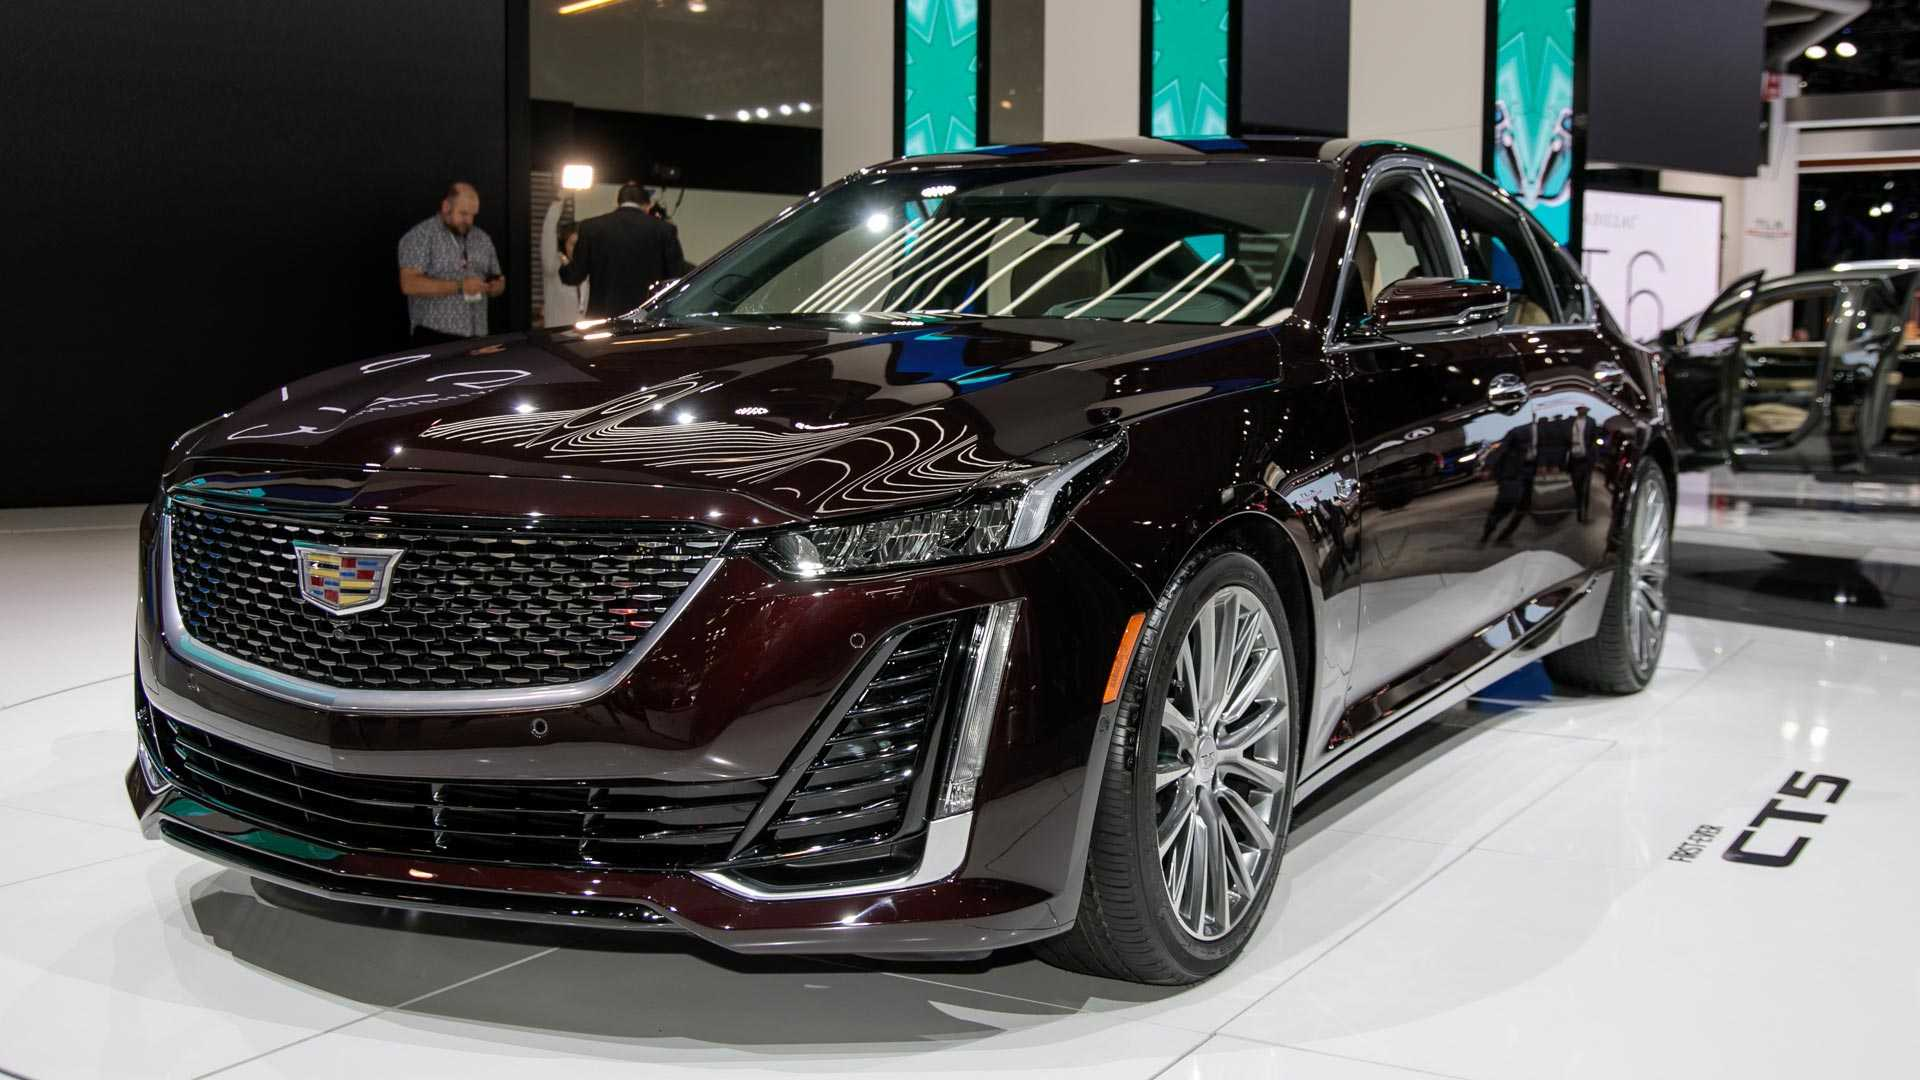 53 All New Cadillac For 2020 Concept with Cadillac For 2020